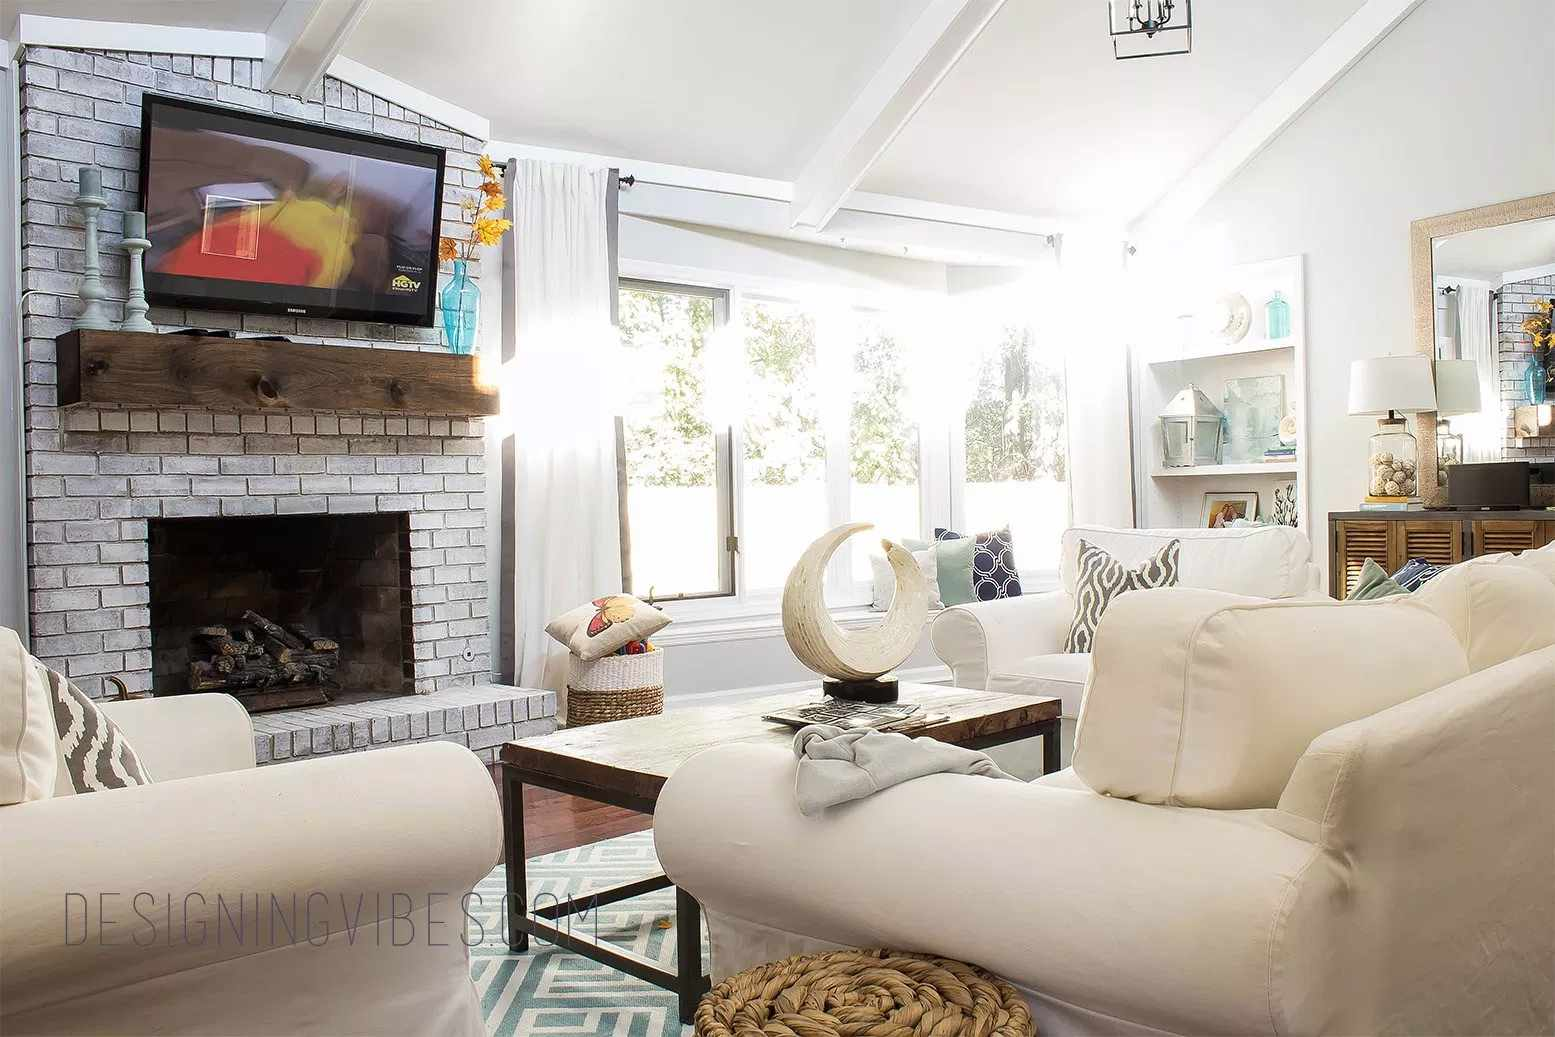 A living room with a fireplace and TV